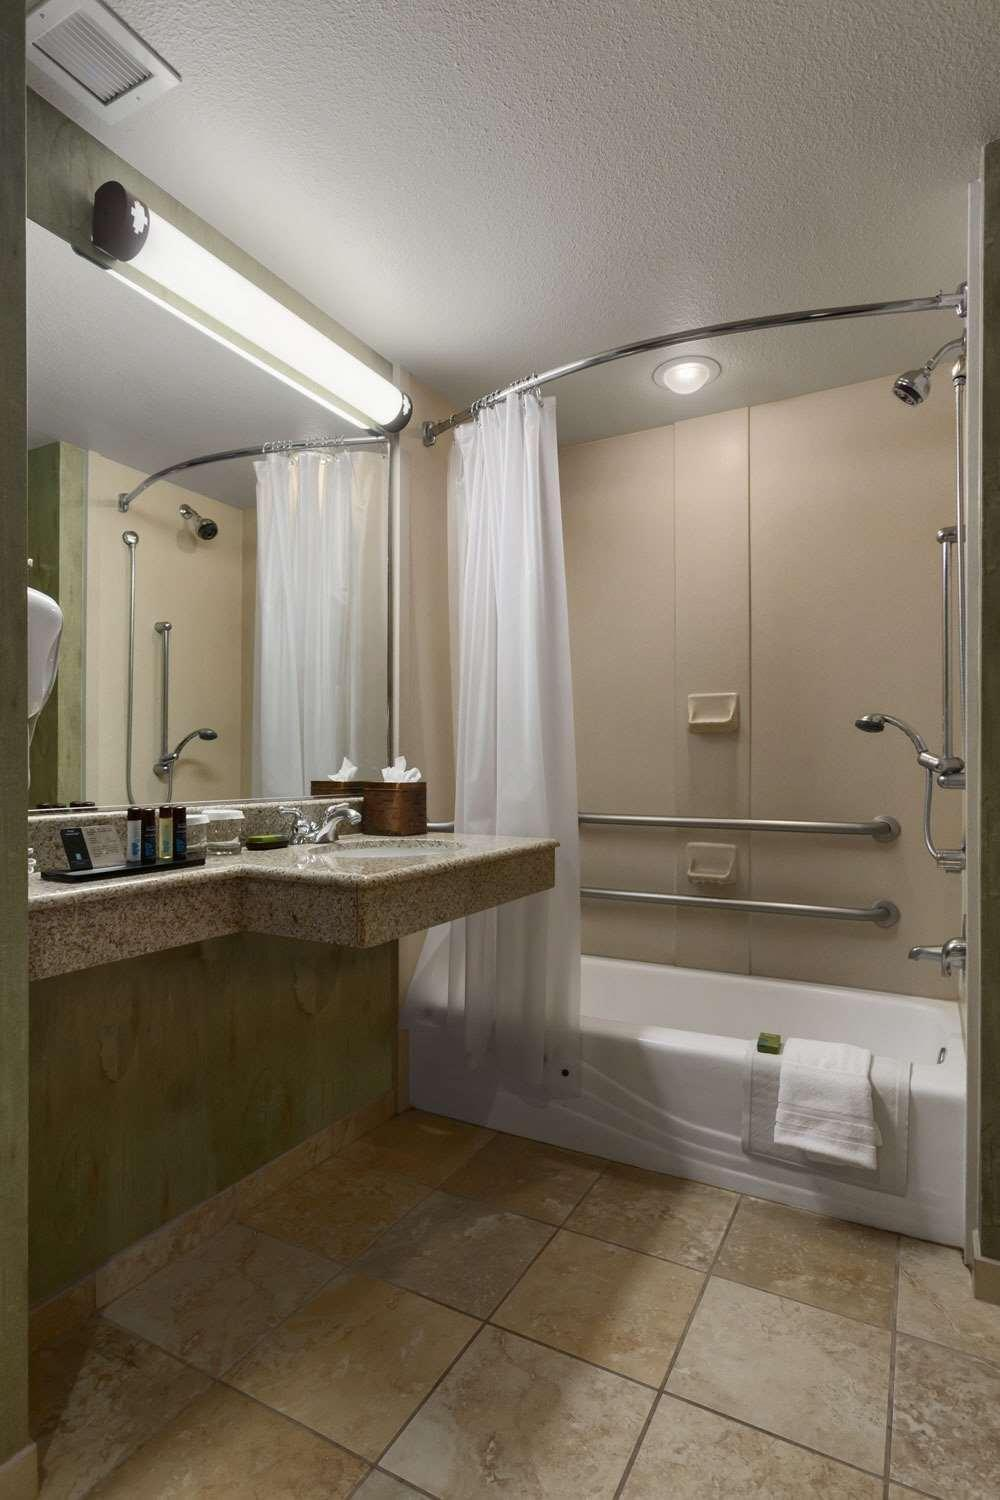 2 Doubles 1Bedroom Suite Mobility/Hearing Accessible Tub